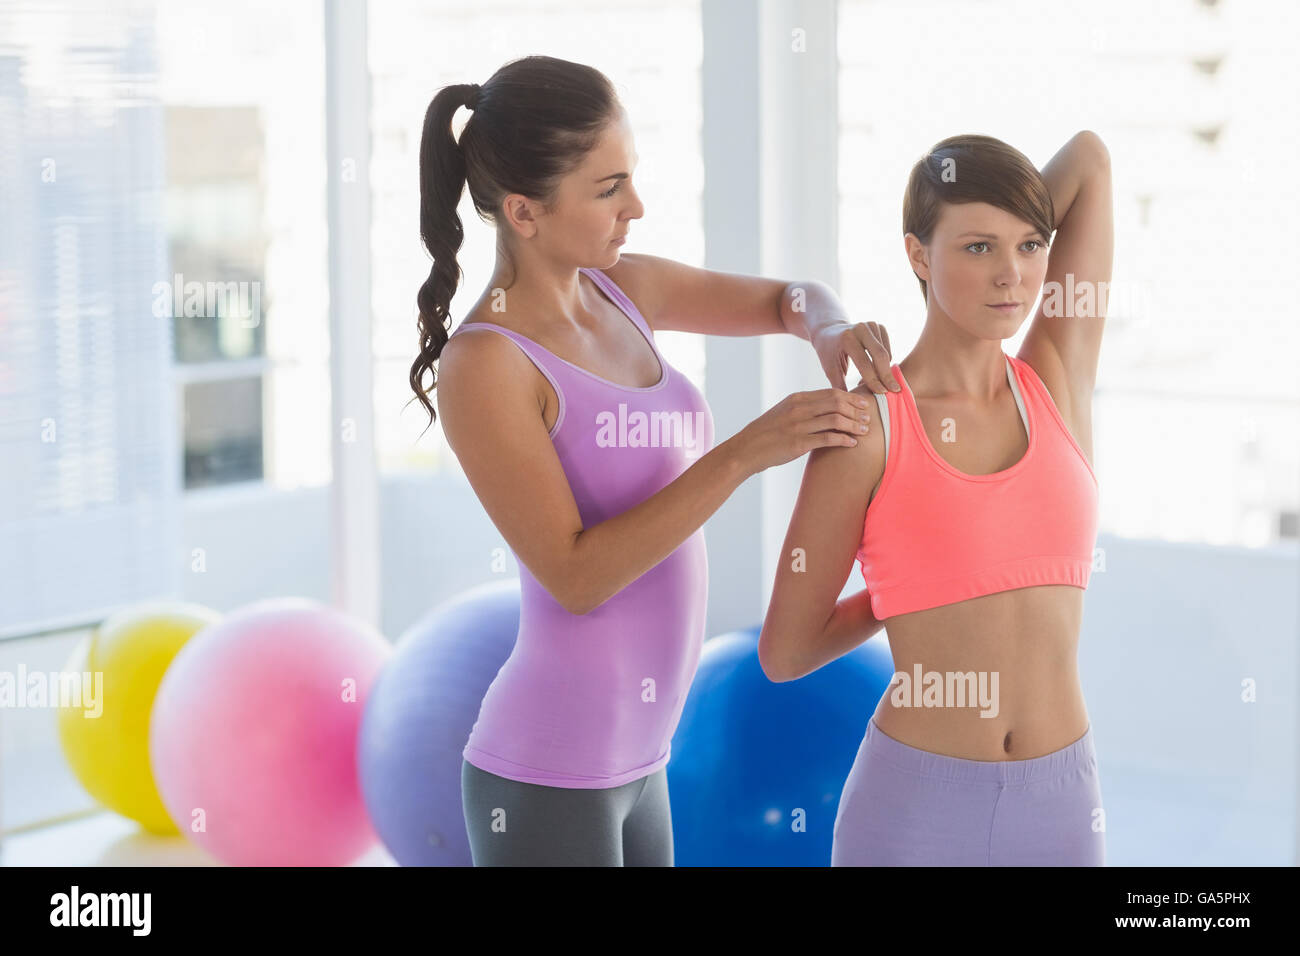 Trainer guiding woman - Stock Image